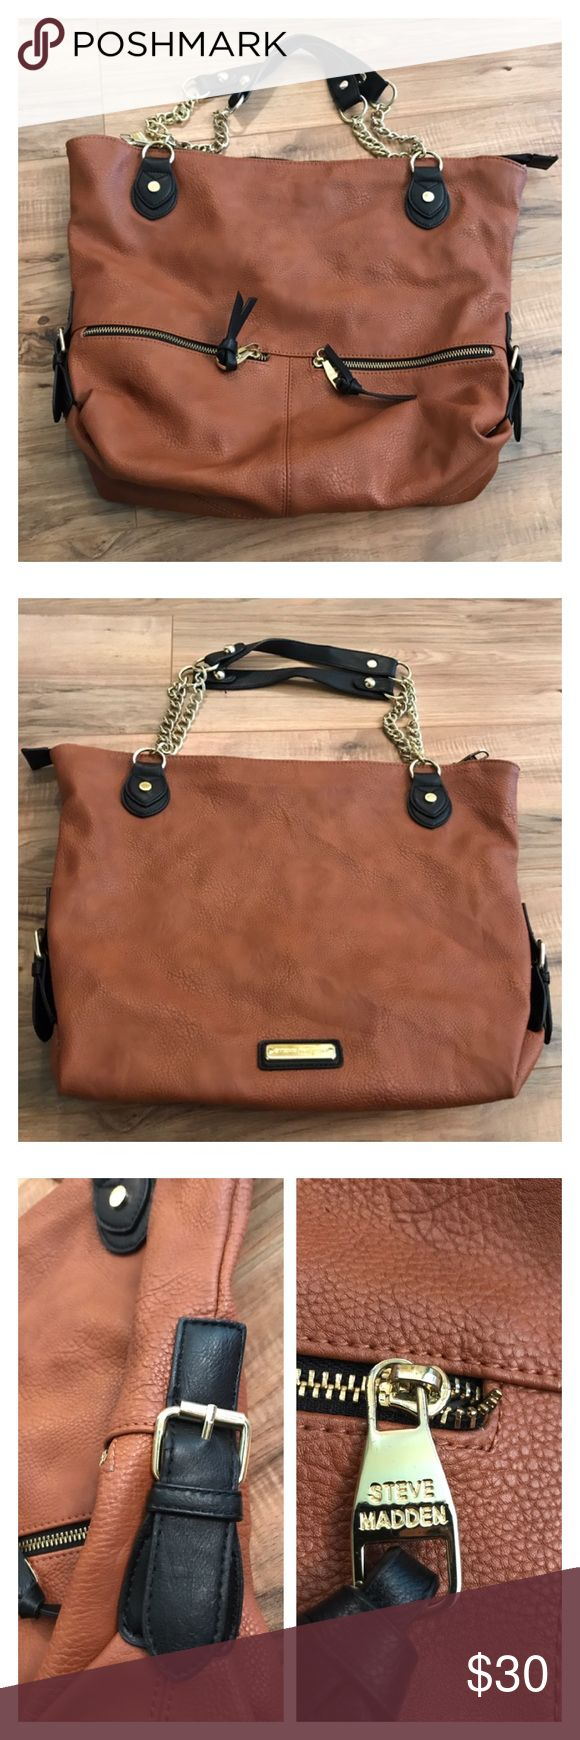 Steve Madden brown faux leather purse. Steve Madden brown faux leather purse. Front has two small zippered pockets. One of the pockets has frayed lining. Main compartment is huge. Interior lining has holes and dirt and needs cleaning. Despite the lining issues this is a great faux leather purse. Steve Madden Bags Shoulder Bags